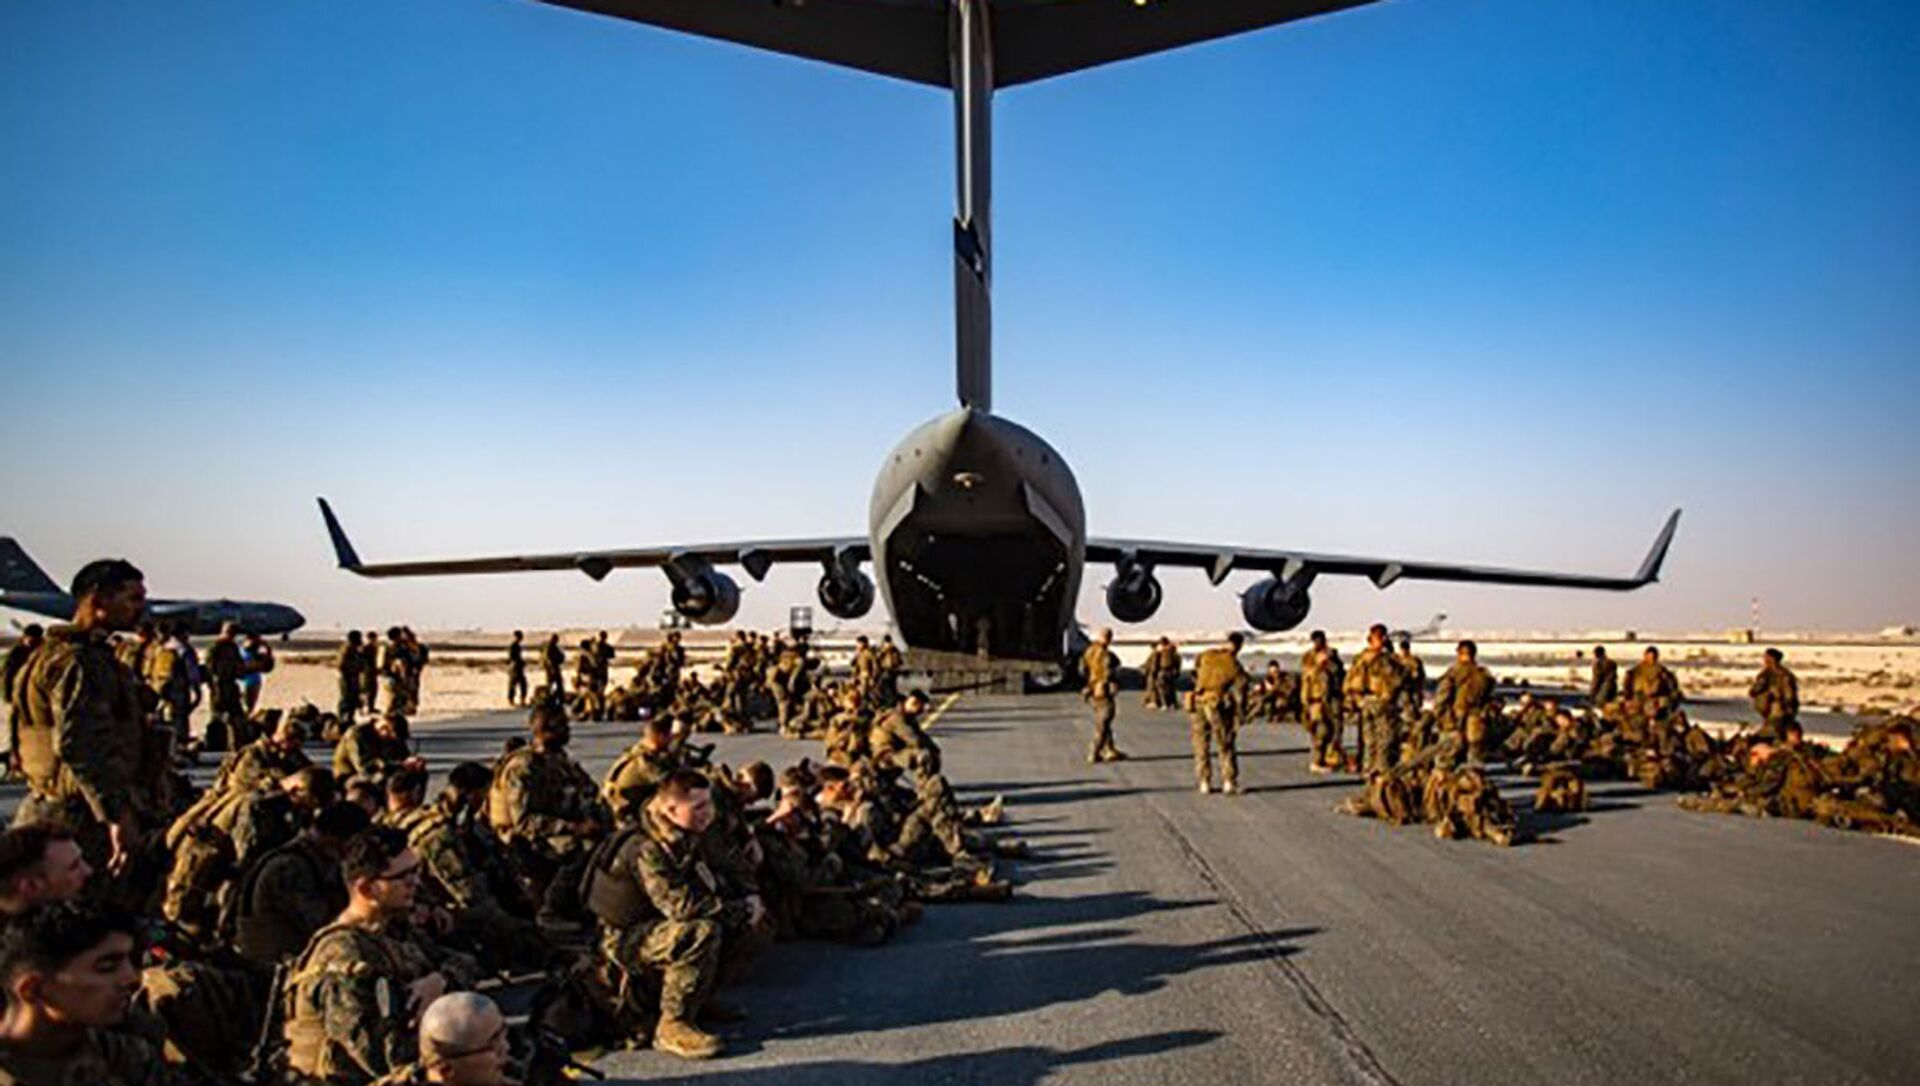 US Marines assigned to the 24th Marine Expeditionary Unit (MEU) await a flight to Kabul, Afghanistan, at Al Udeied Air Base in Qatar, 17 August 2021 - Sputnik International, 1920, 19.08.2021